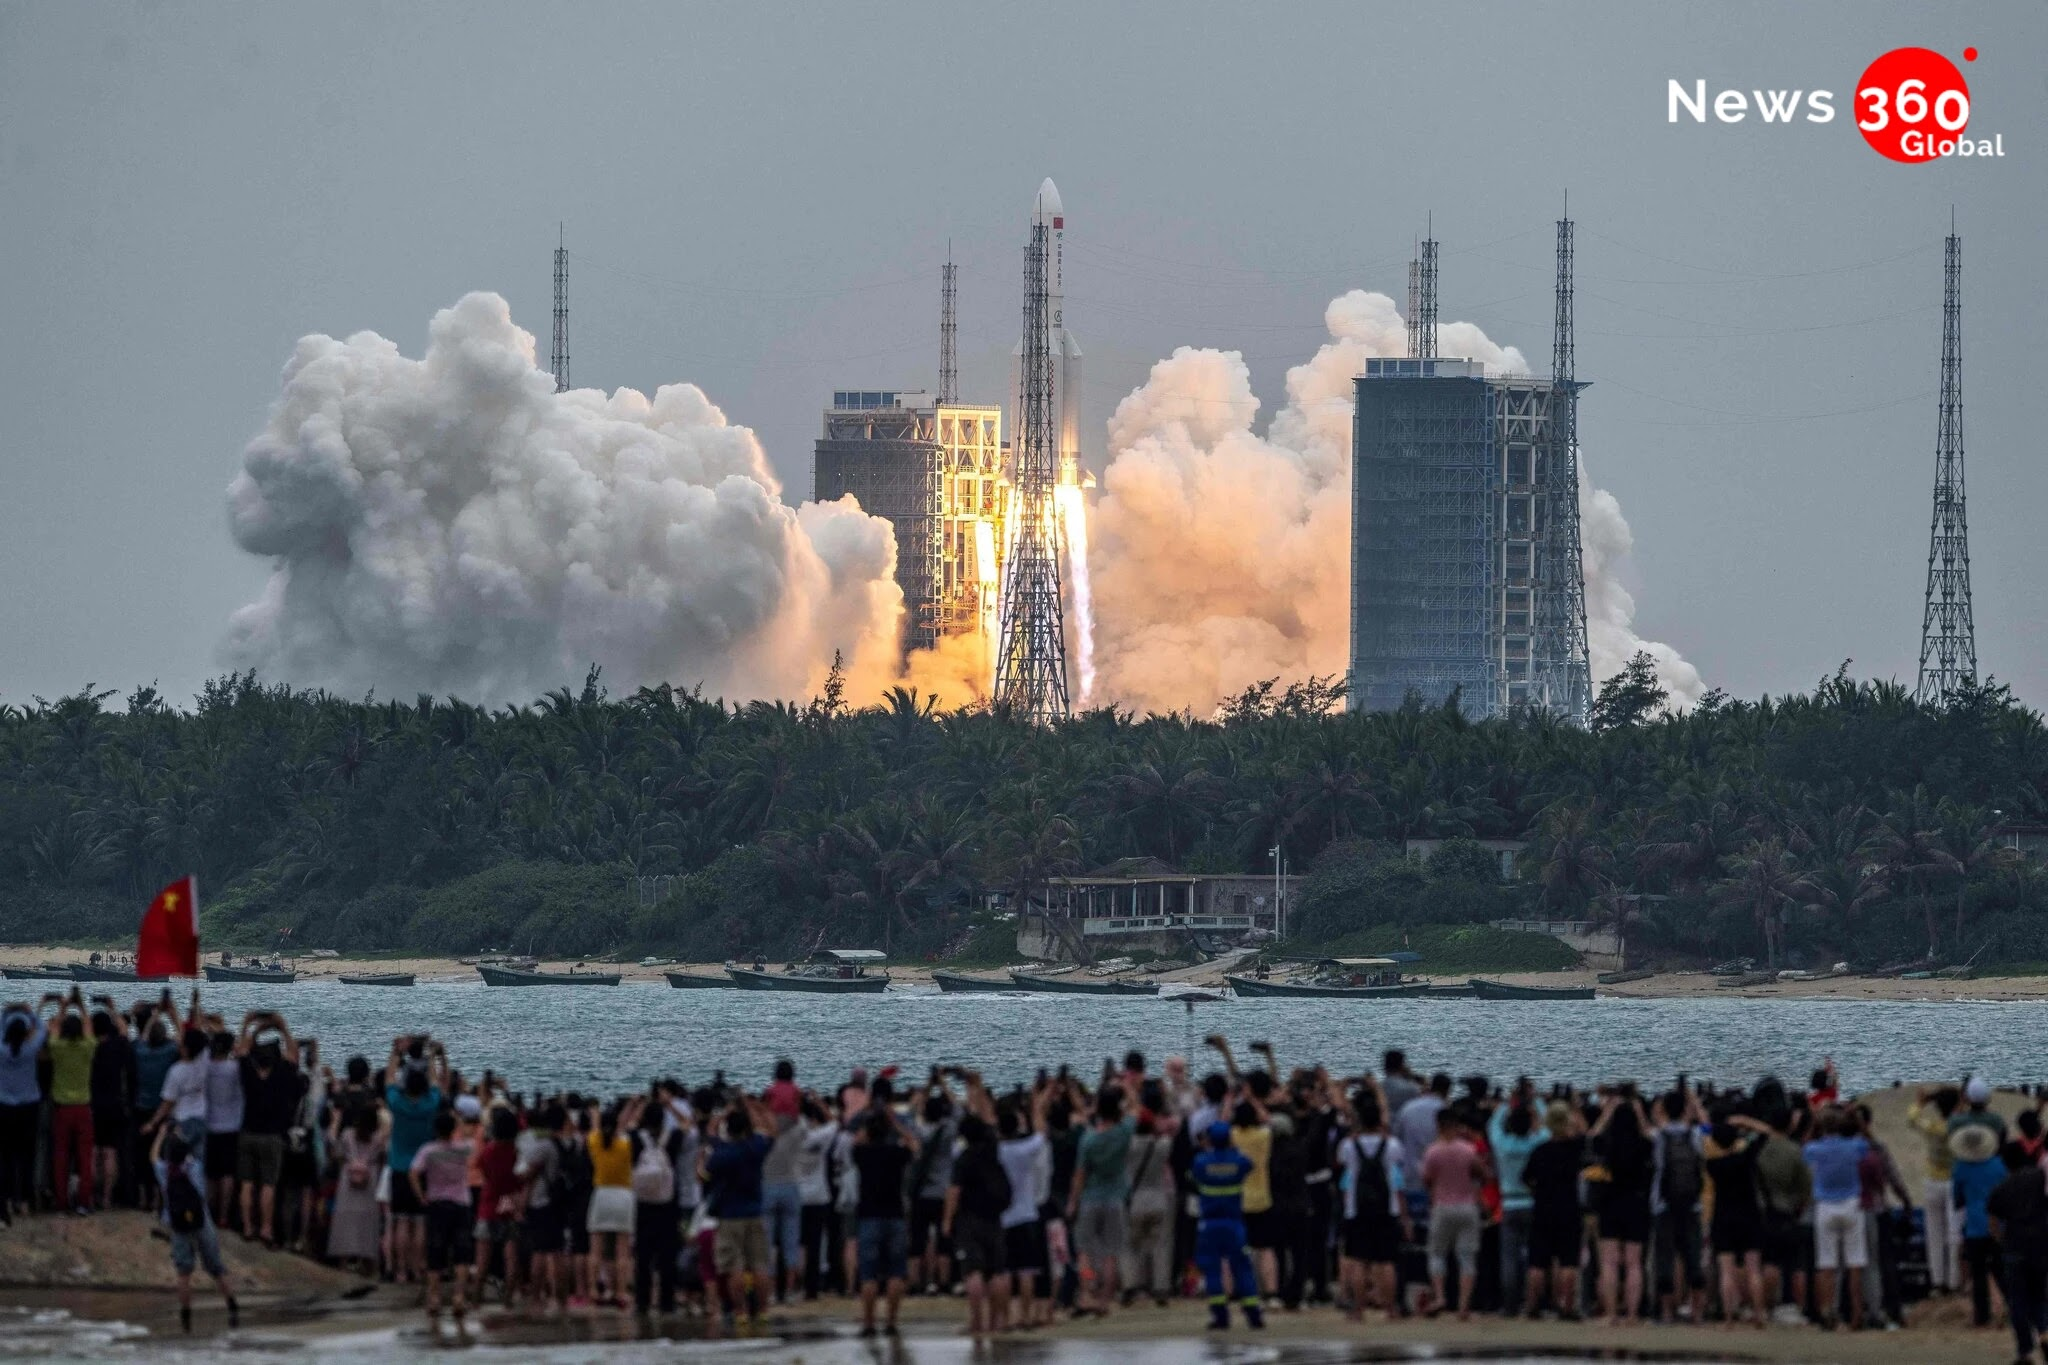 Final mystery of china's uncontrolled rocket. And where it landed?